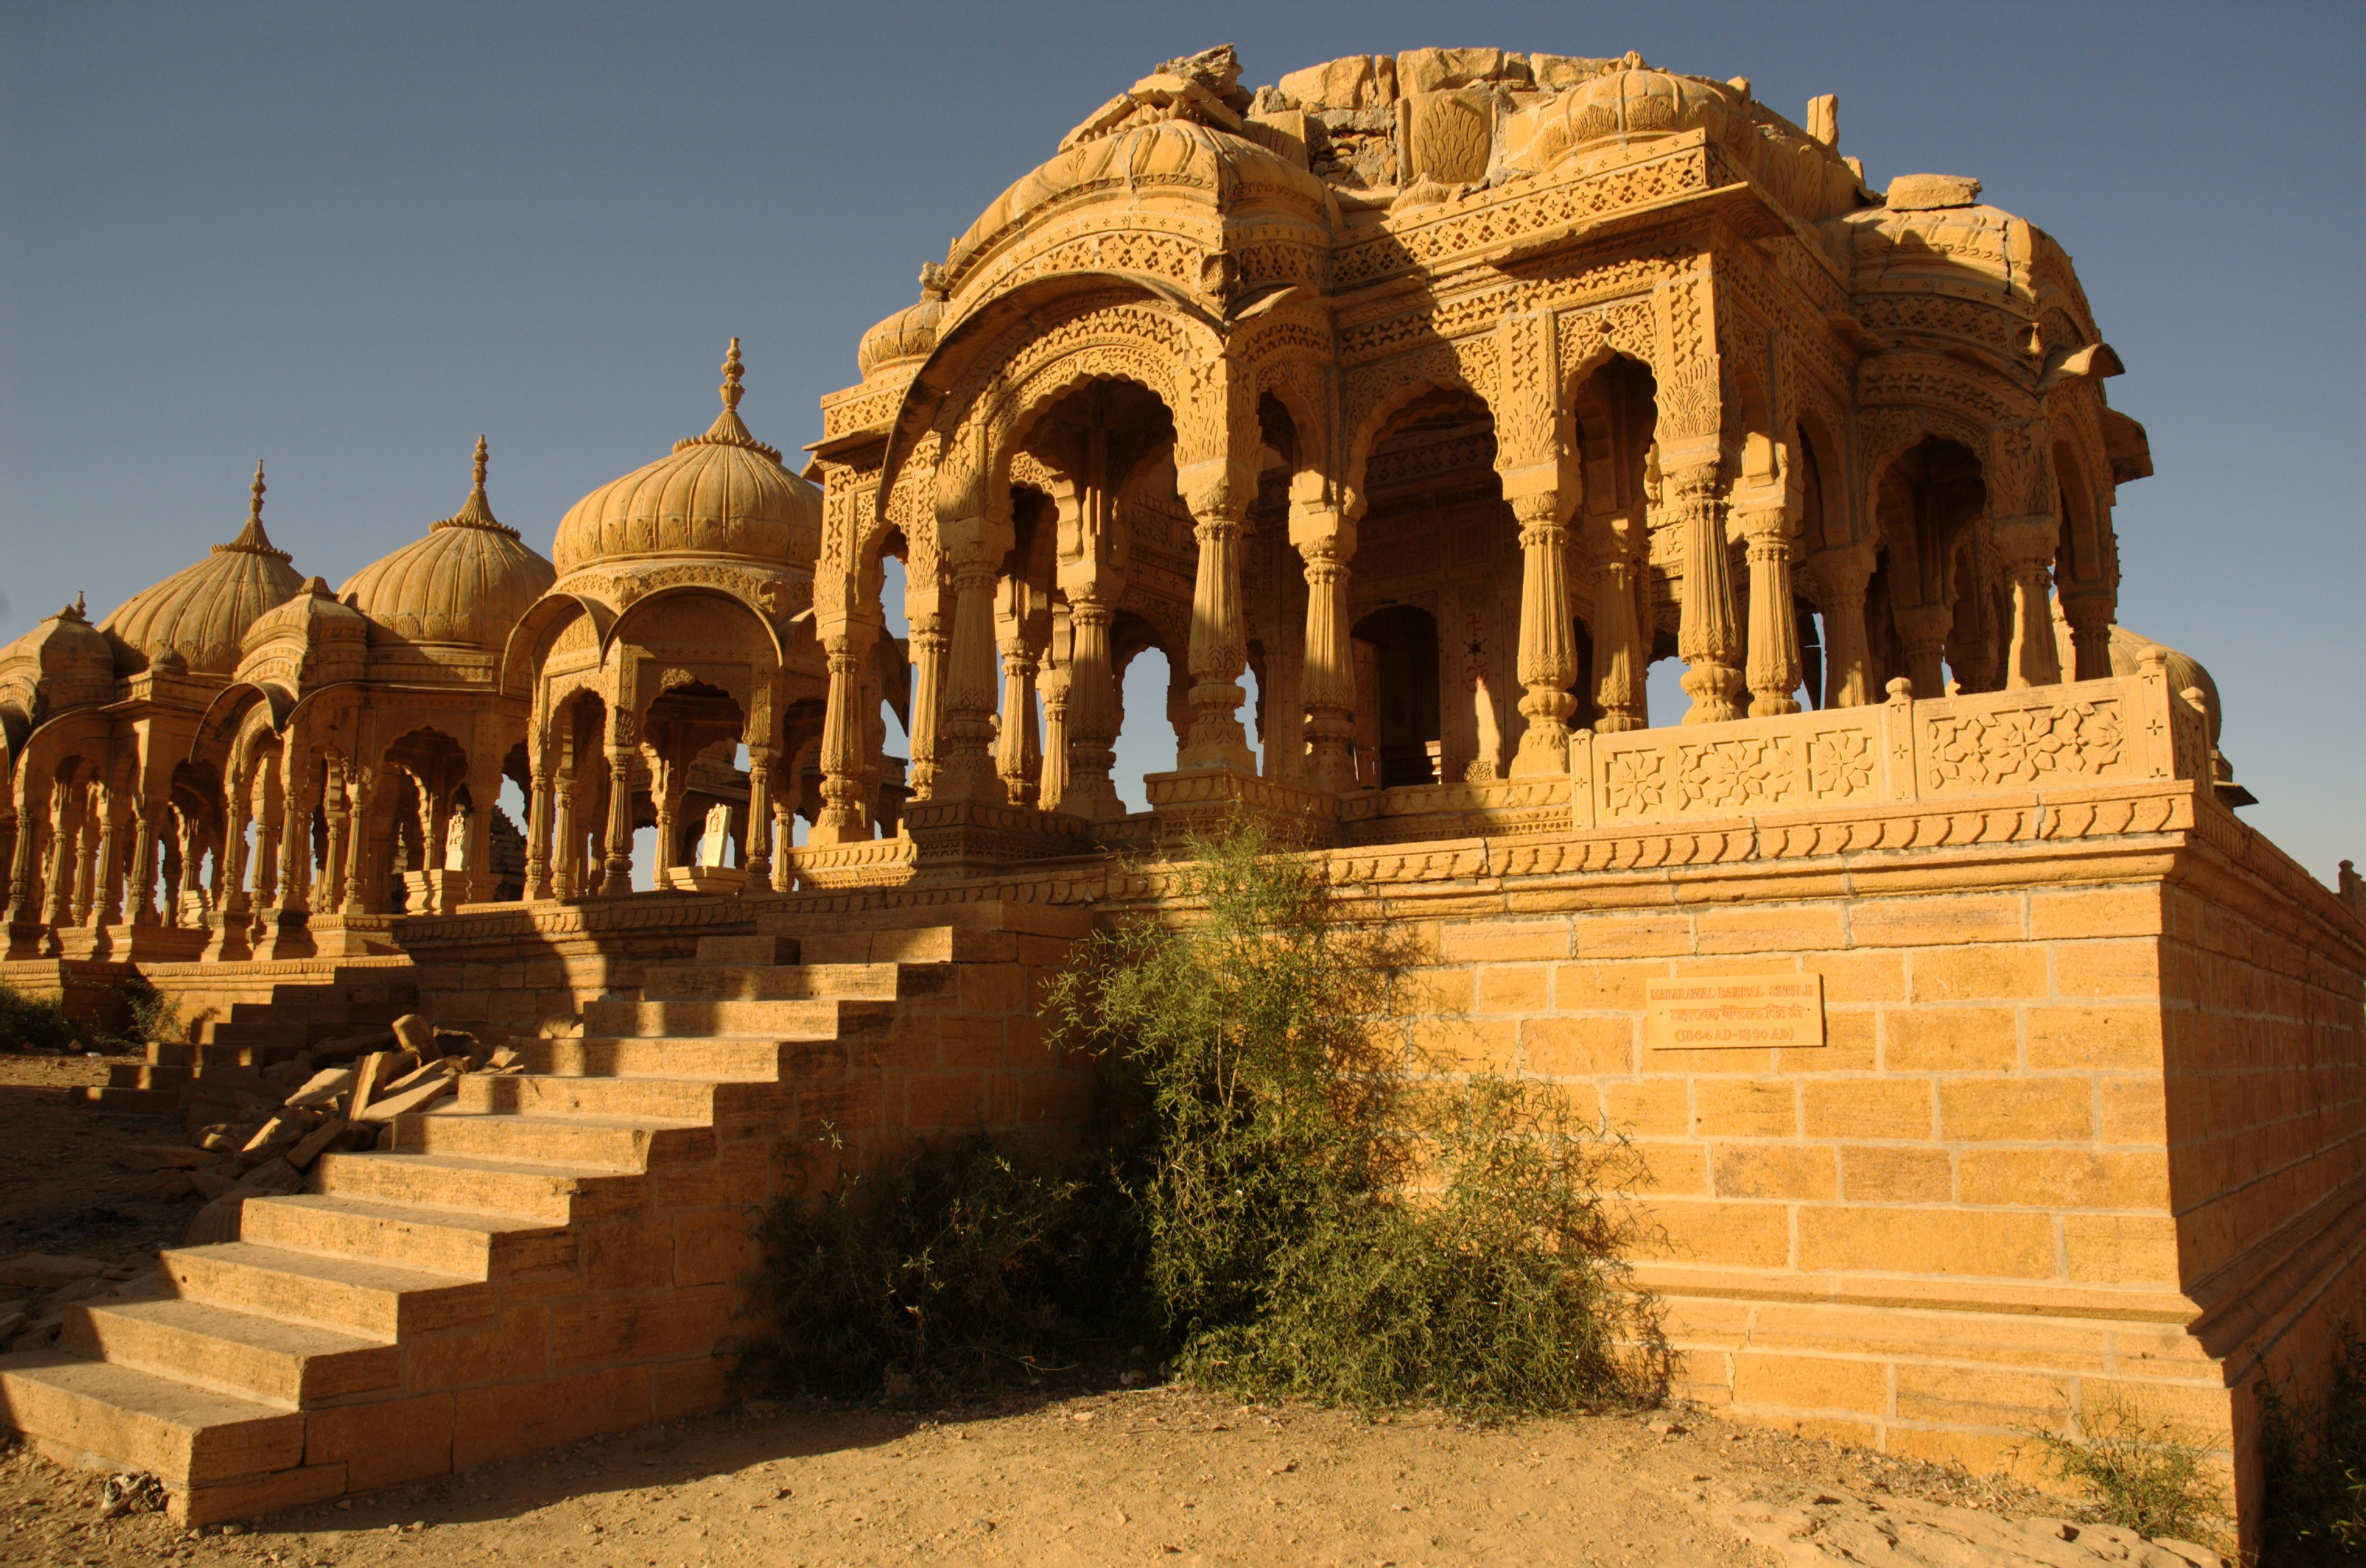 The fort during the best time to visit Jaisalmer